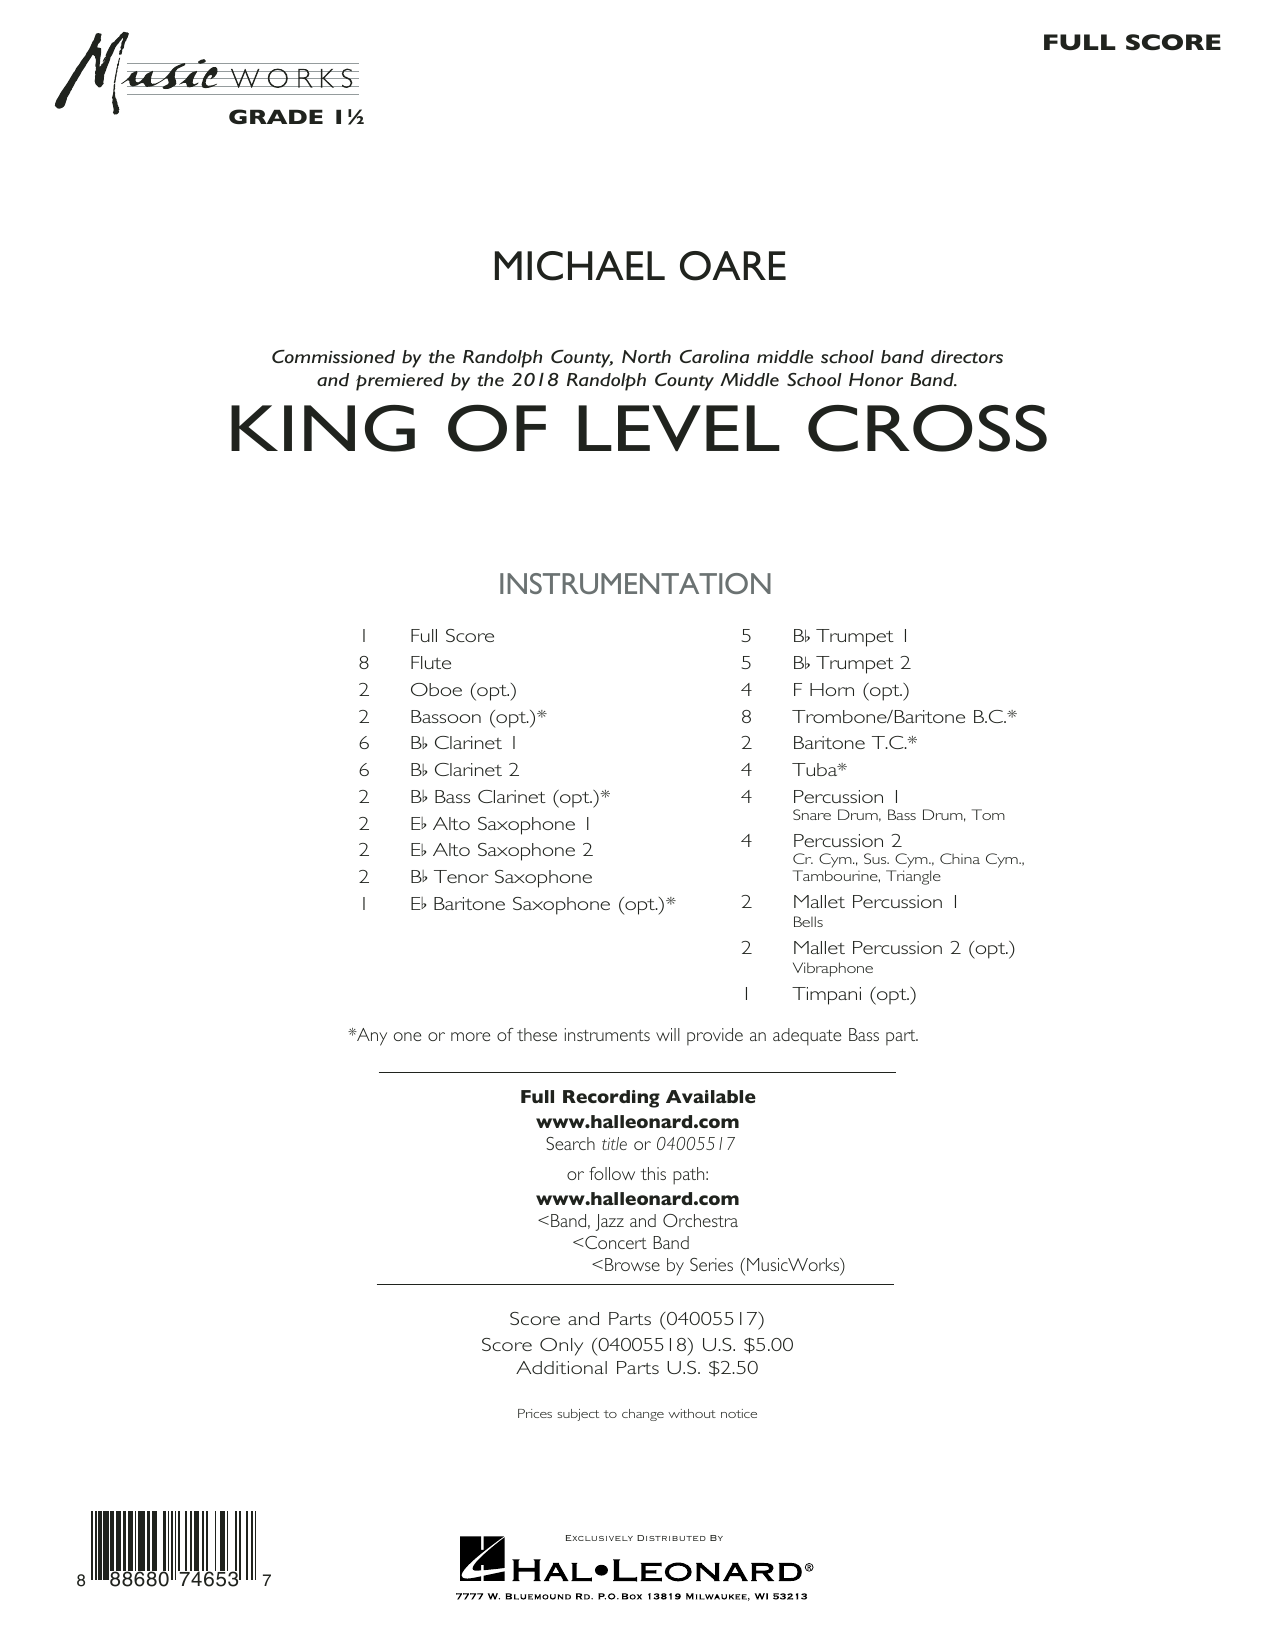 Michael Oare King of Level Cross - Conductor Score (Full Score) sheet music notes and chords. Download Printable PDF.